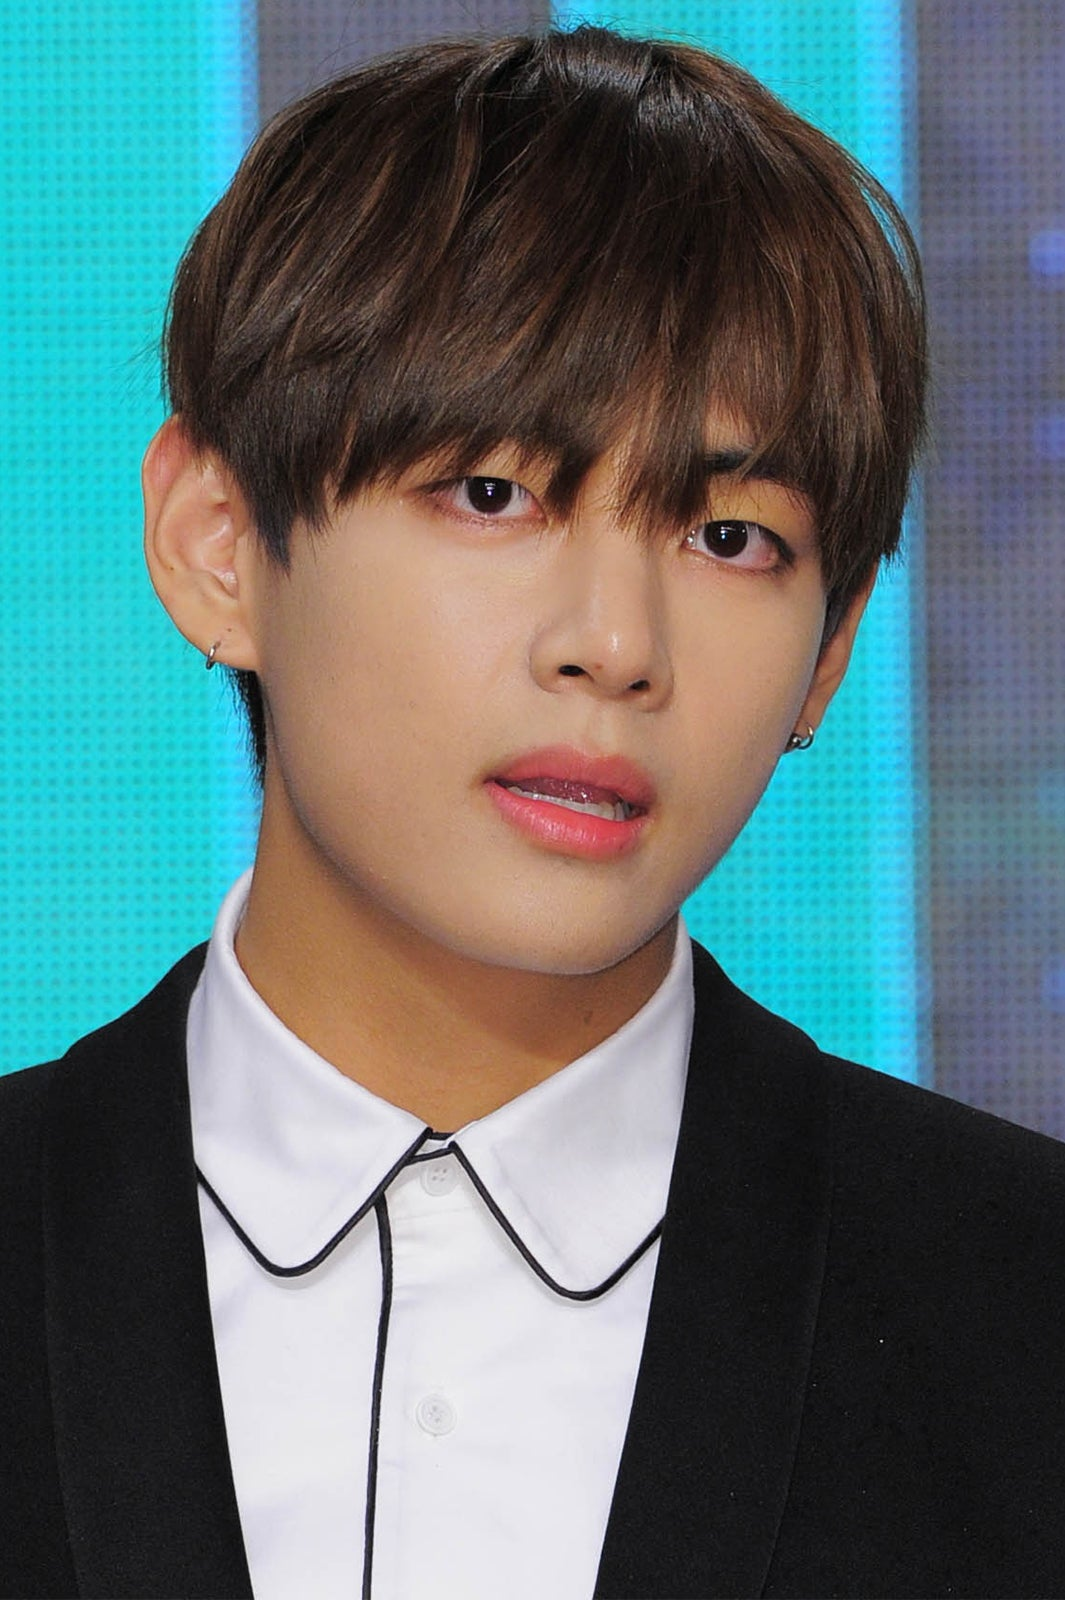 V(テヒョン)/photo by Getty Images